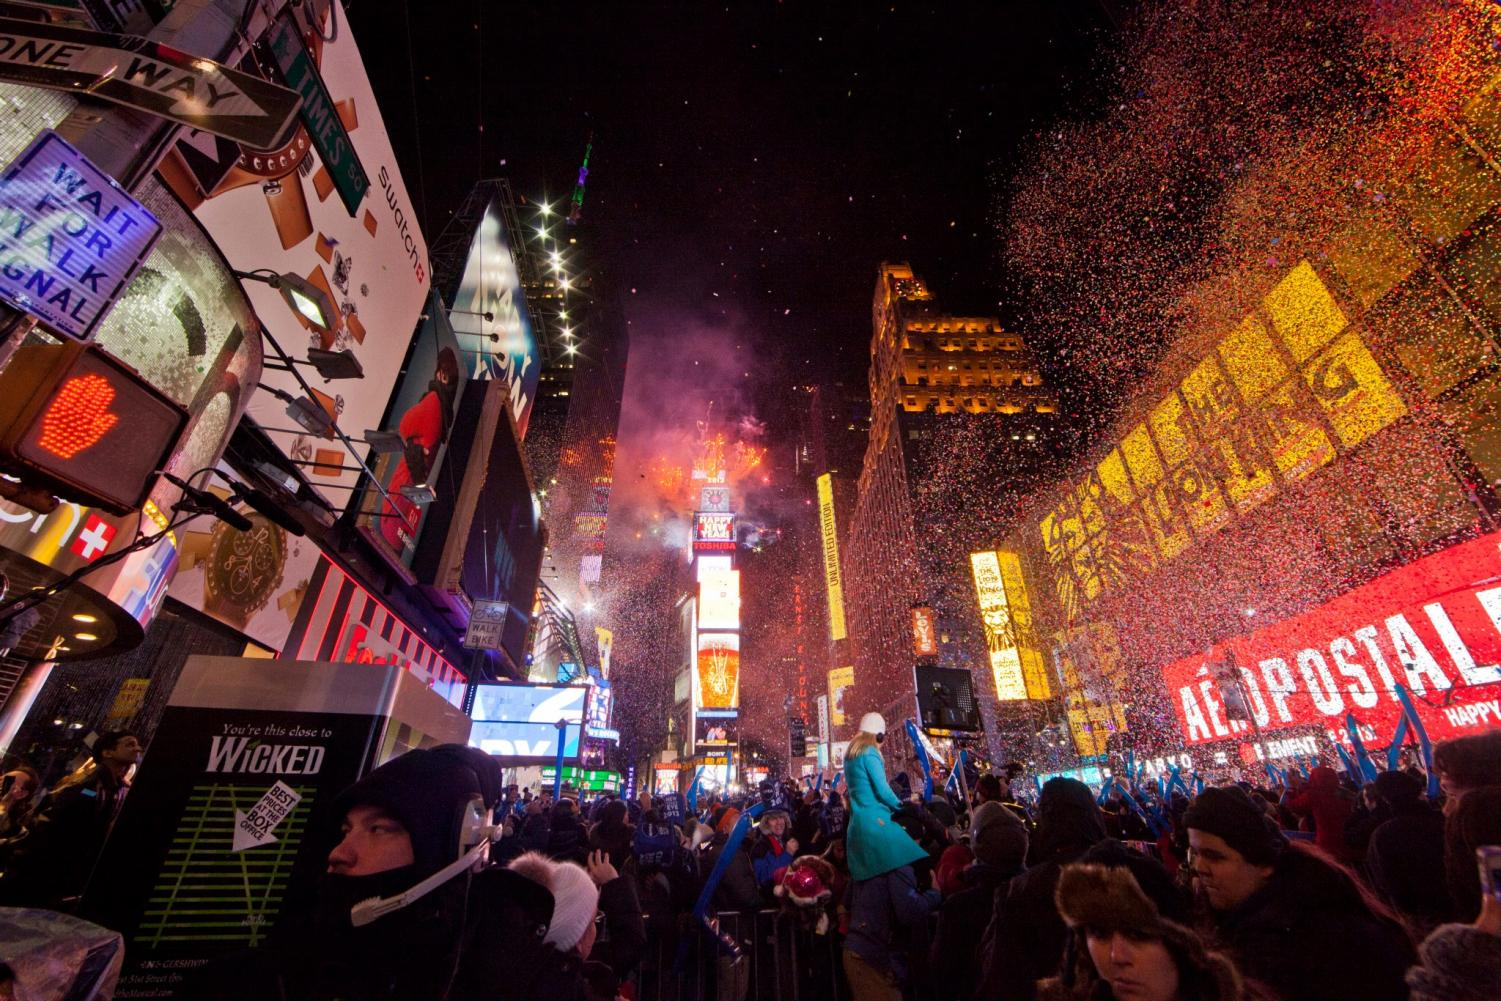 The ball dropping on New Years Eve is when 2018 officially begins. Photo found at: http://bit.ly/2zbftmr.